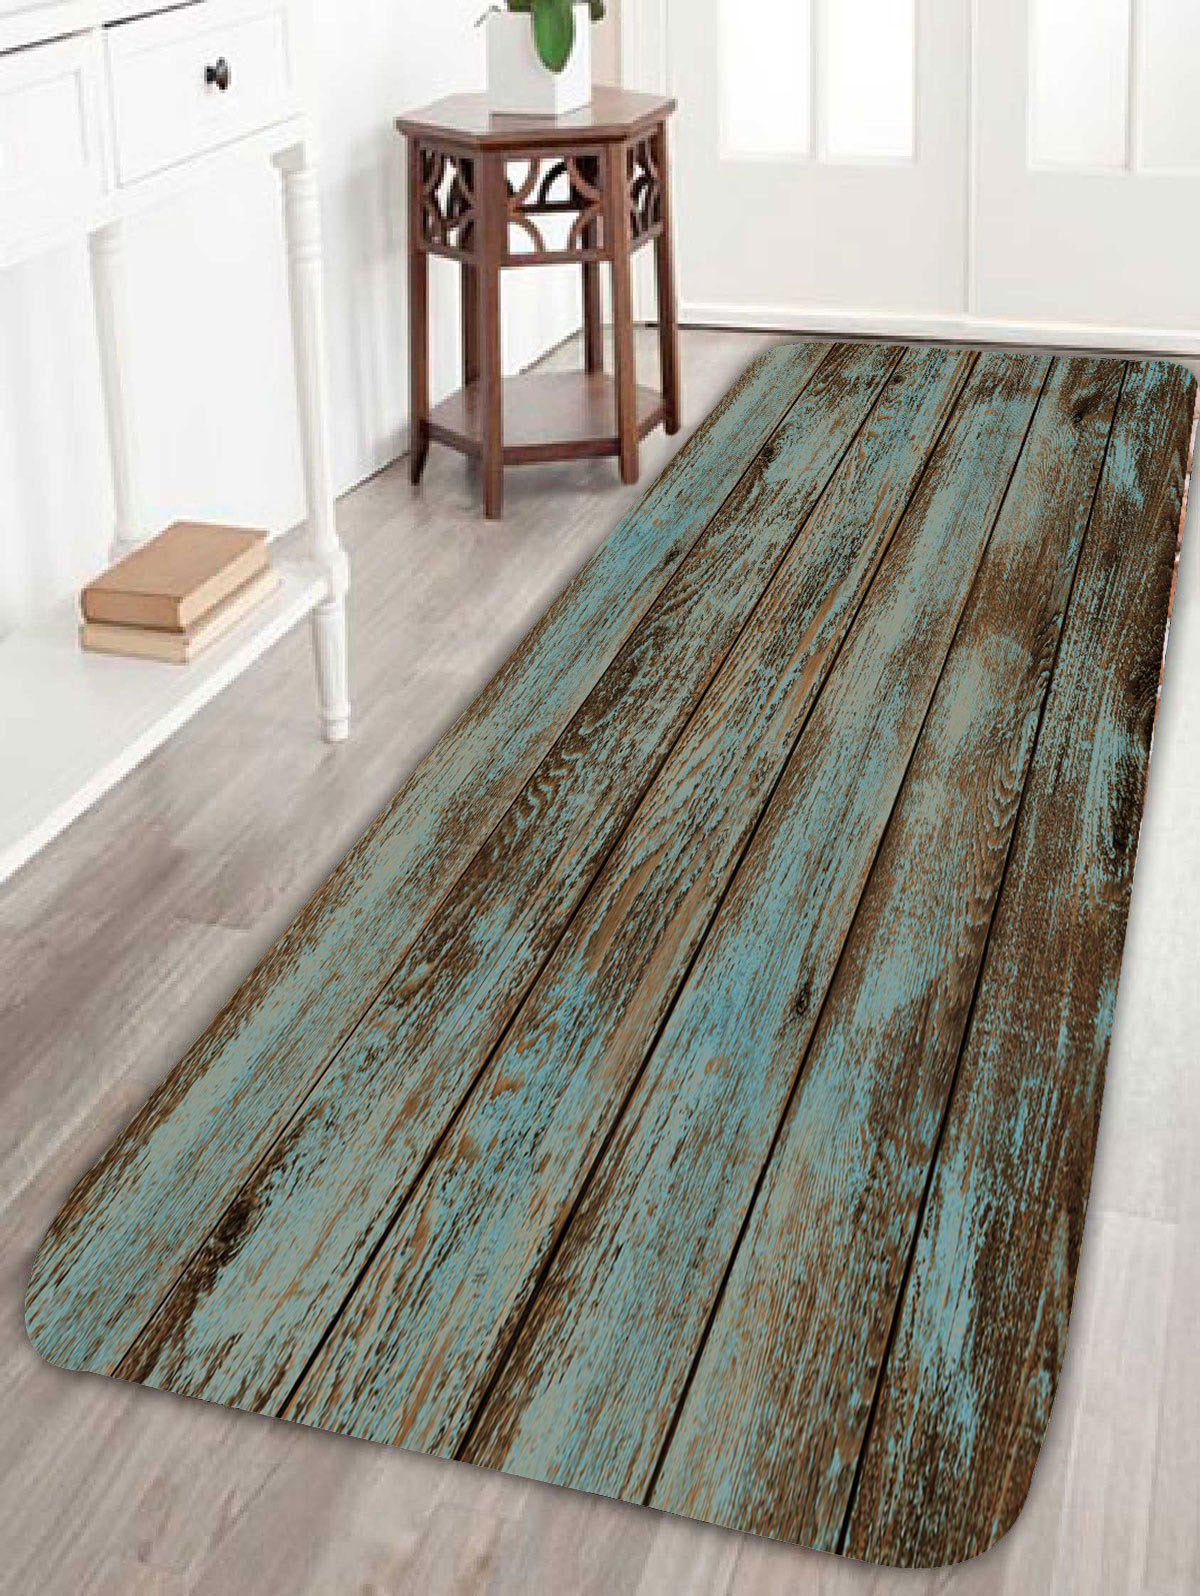 2018 Wood Grain Print Bathroom Rug Green W Inch L Inch In